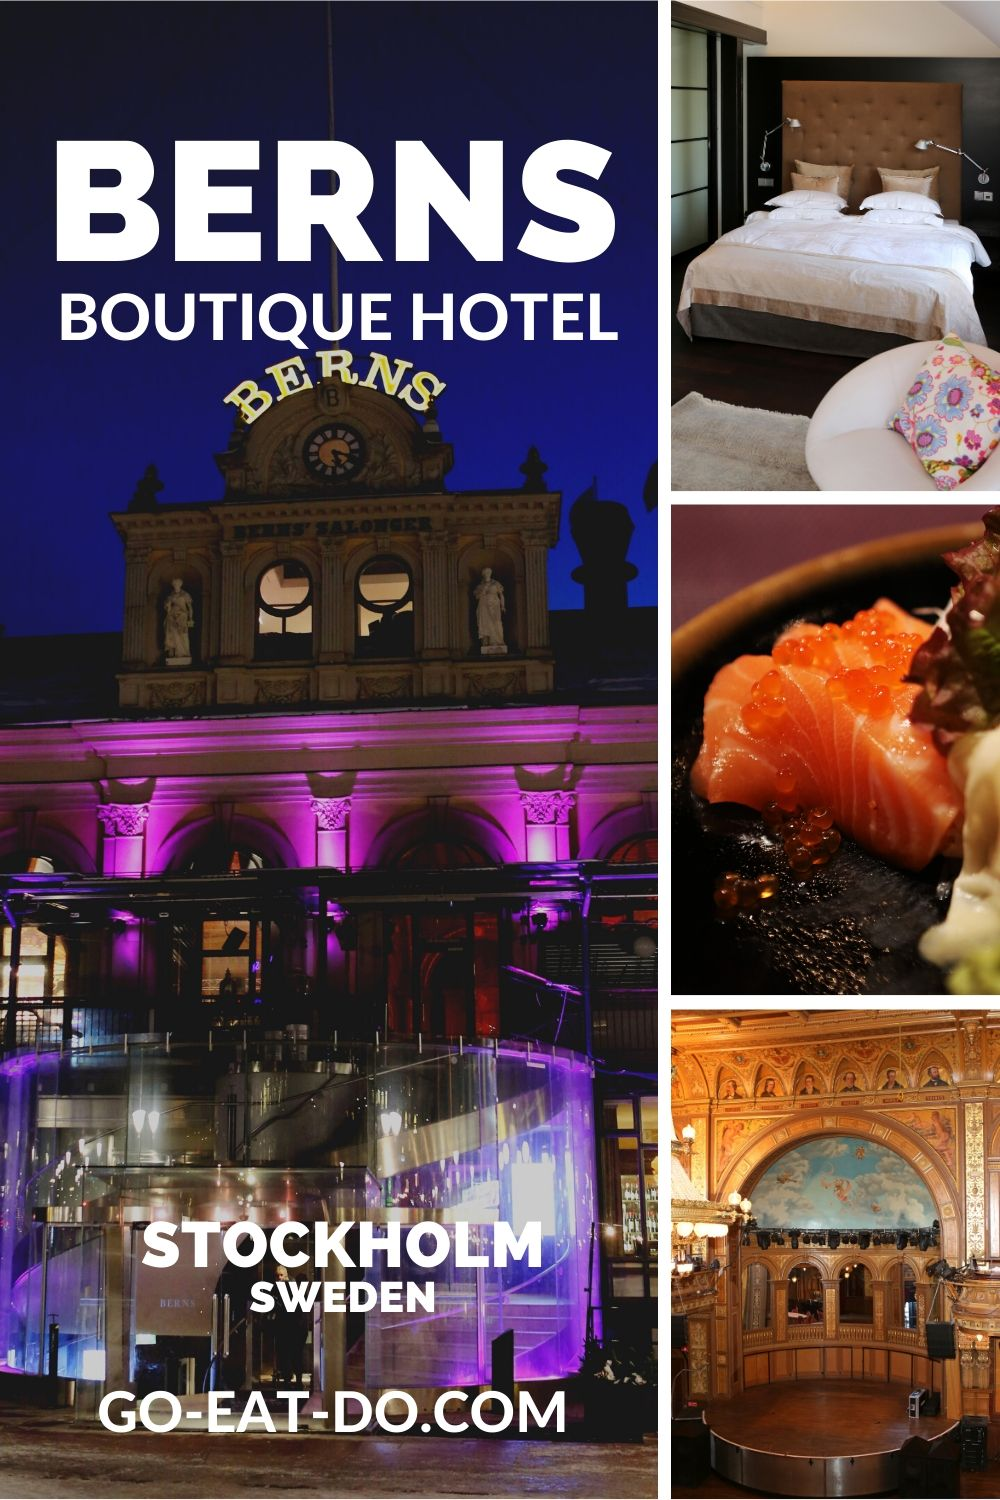 Pinterest pin for Go Eat Do's blog post about staying at the Berns Hotel, which has a nightlub, Asian restaurant and designer guestrooms, in Stockholm, Sweden